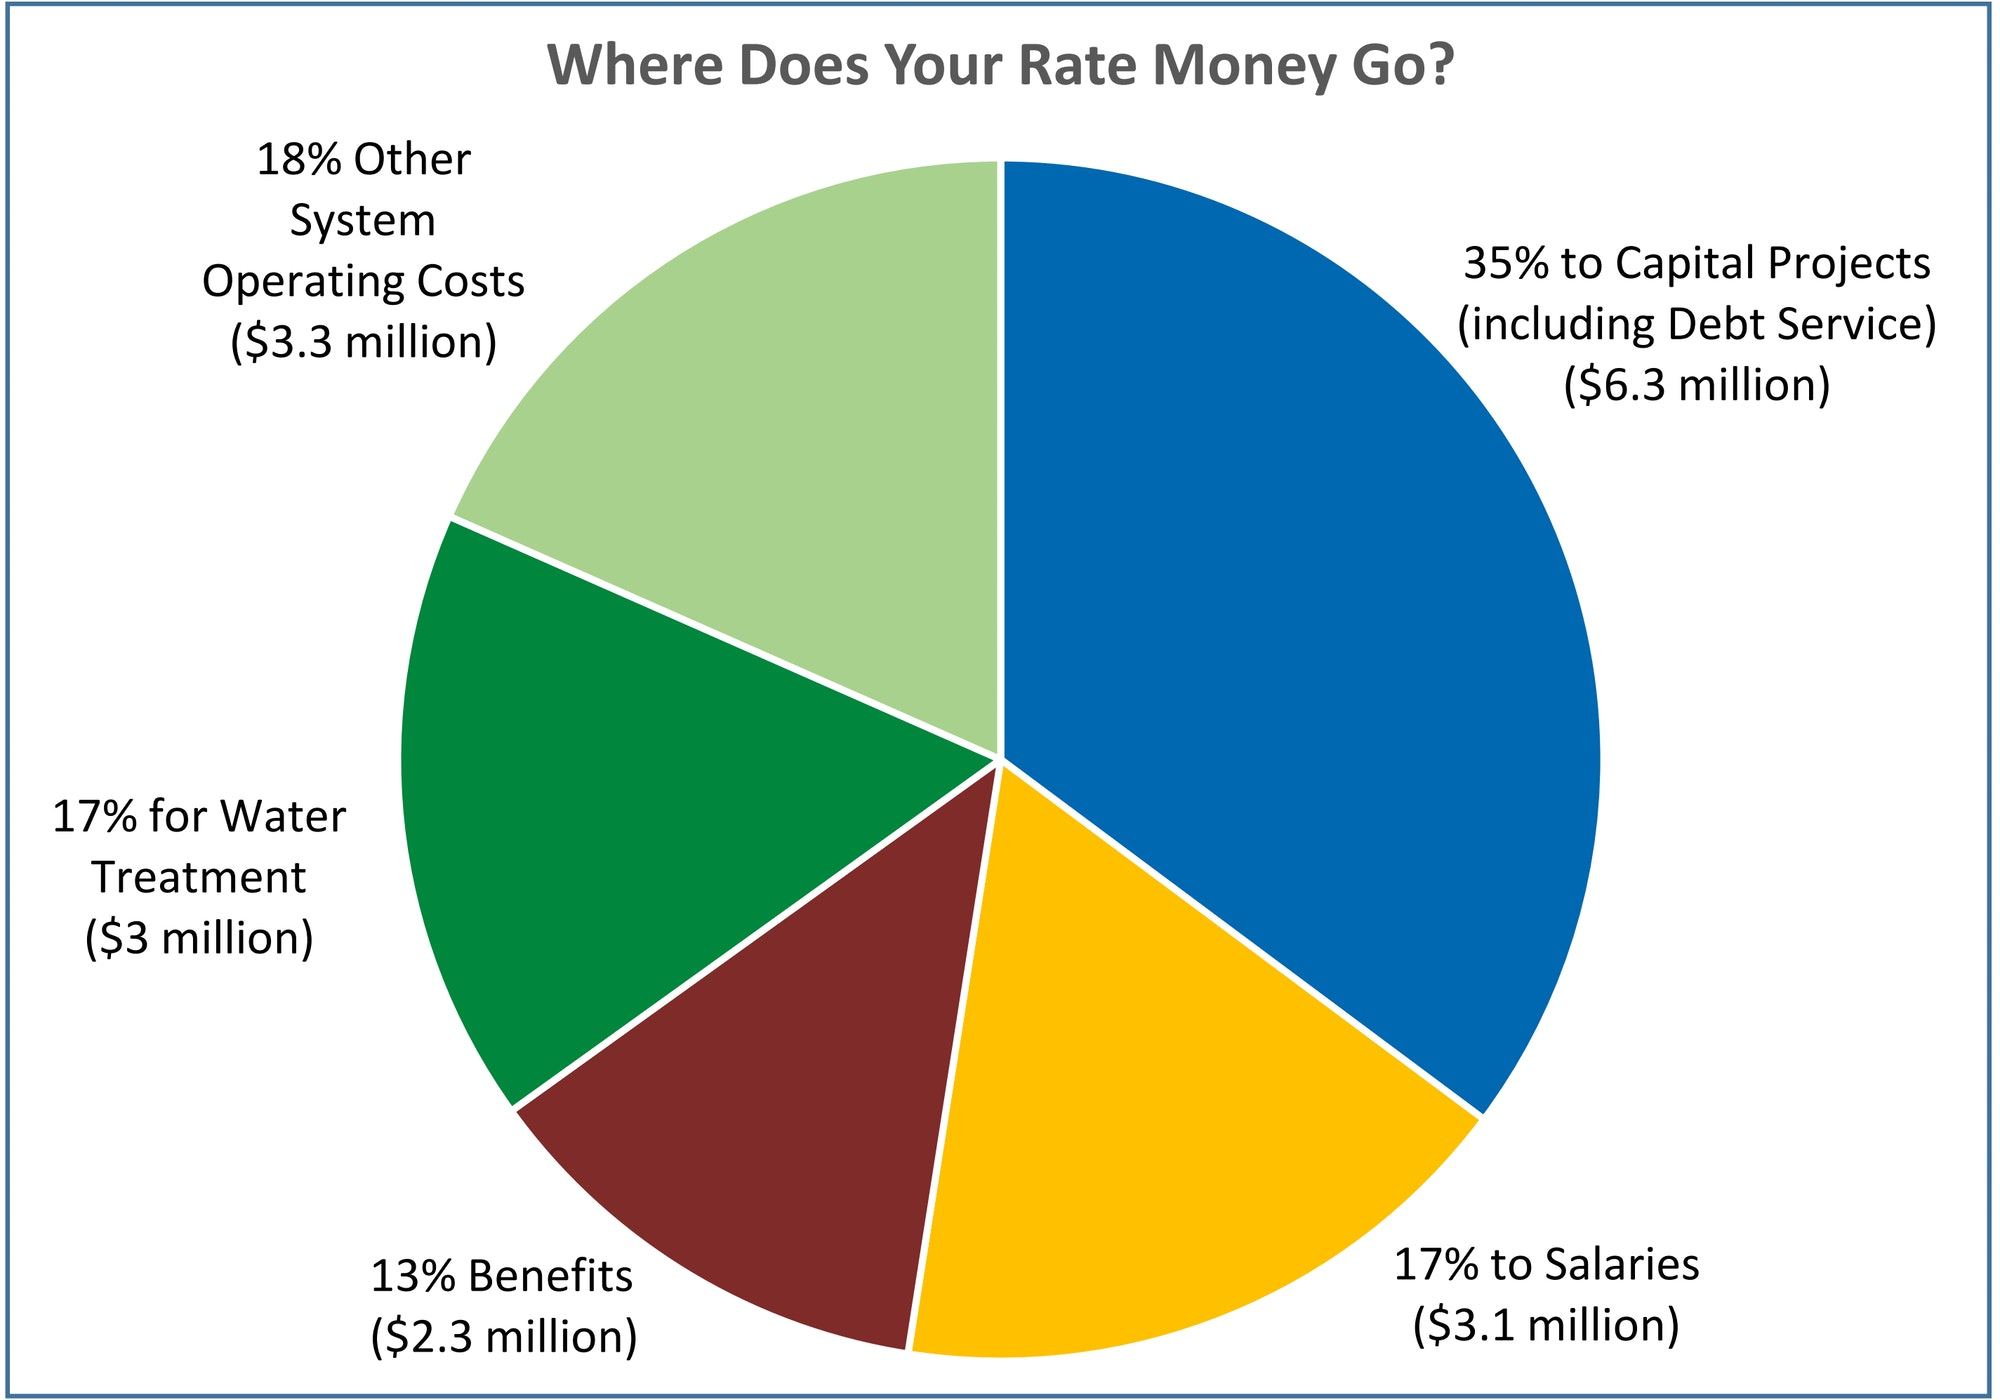 Pie Chart of Where Does Your Rate Money Go